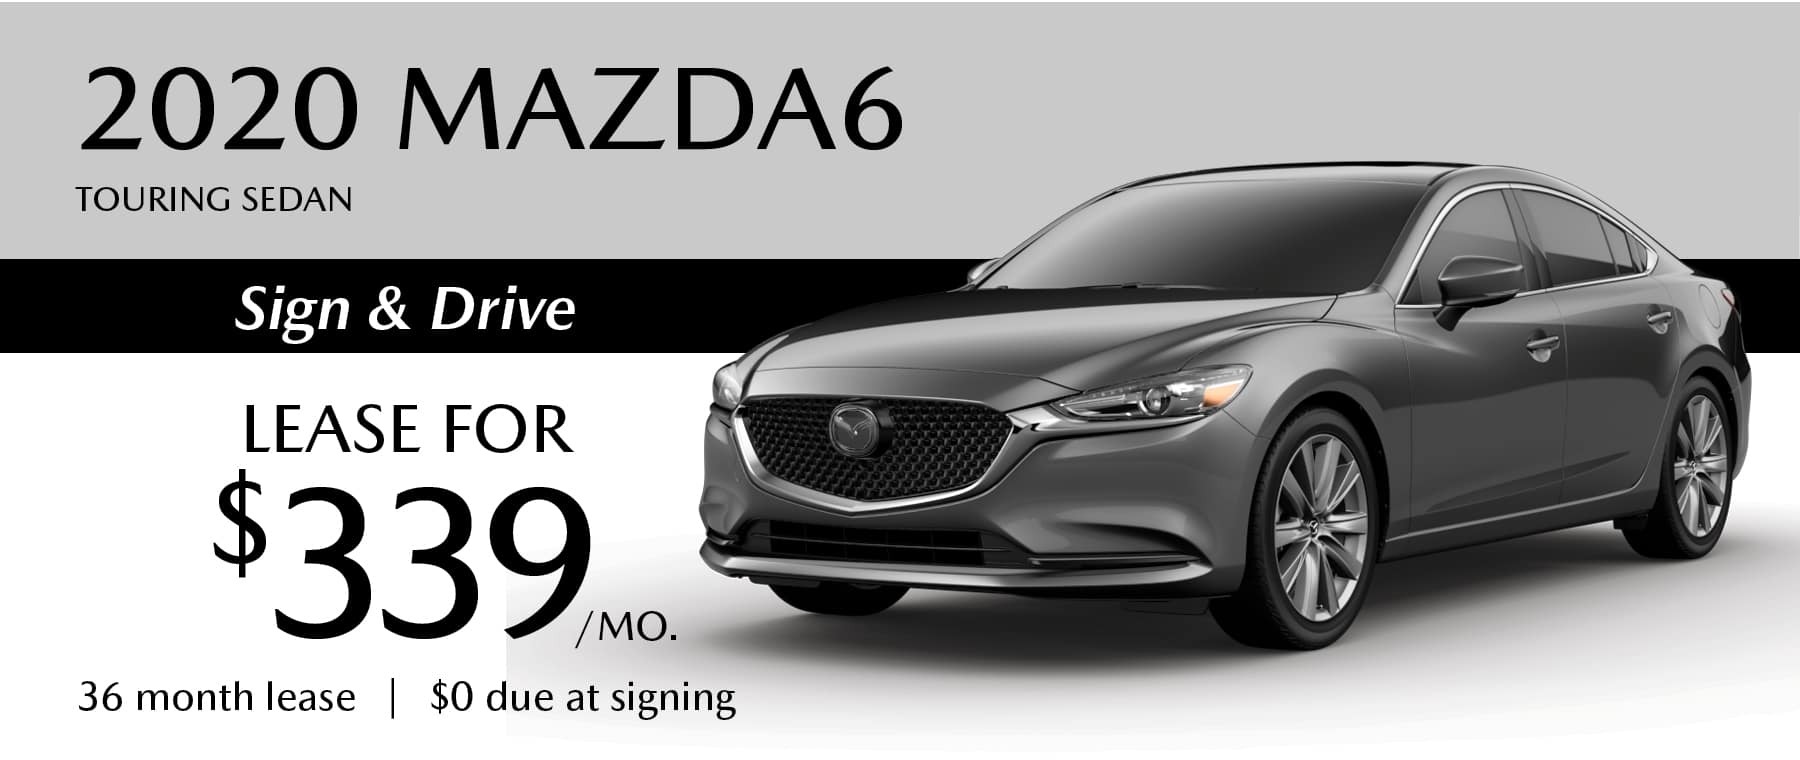 2020 Mazda6 Touring Sedan Lease with $0 due at signing